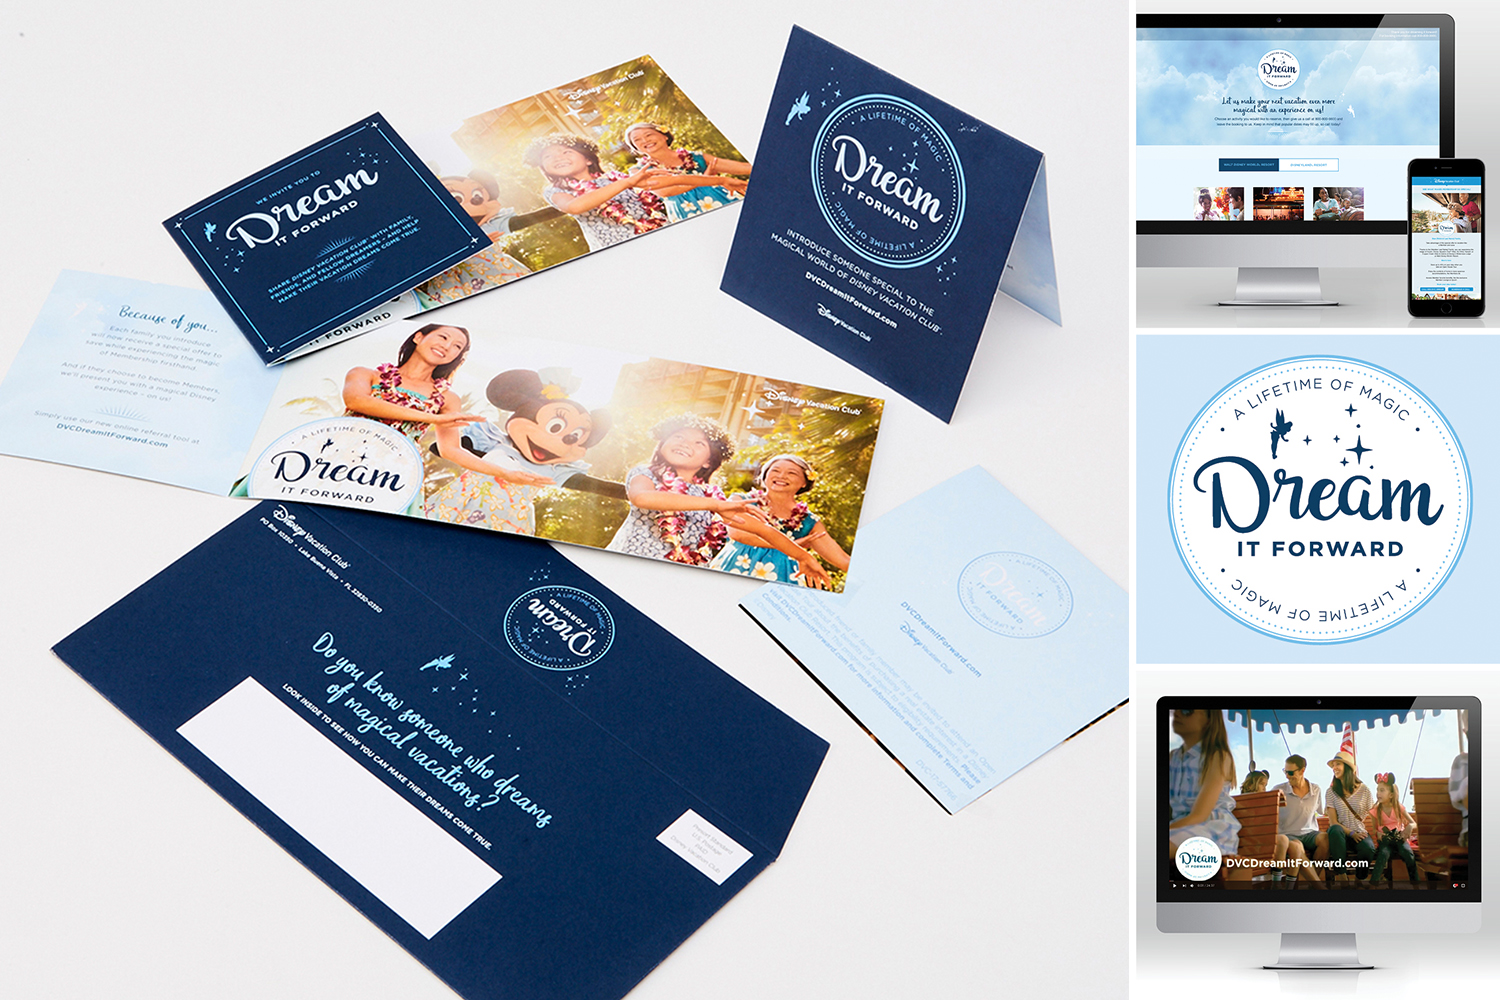 Because members receive a lot of direct mail from Disney Vacation Club, we needed to give these pieces a new look, feel and voice to help them stand out.